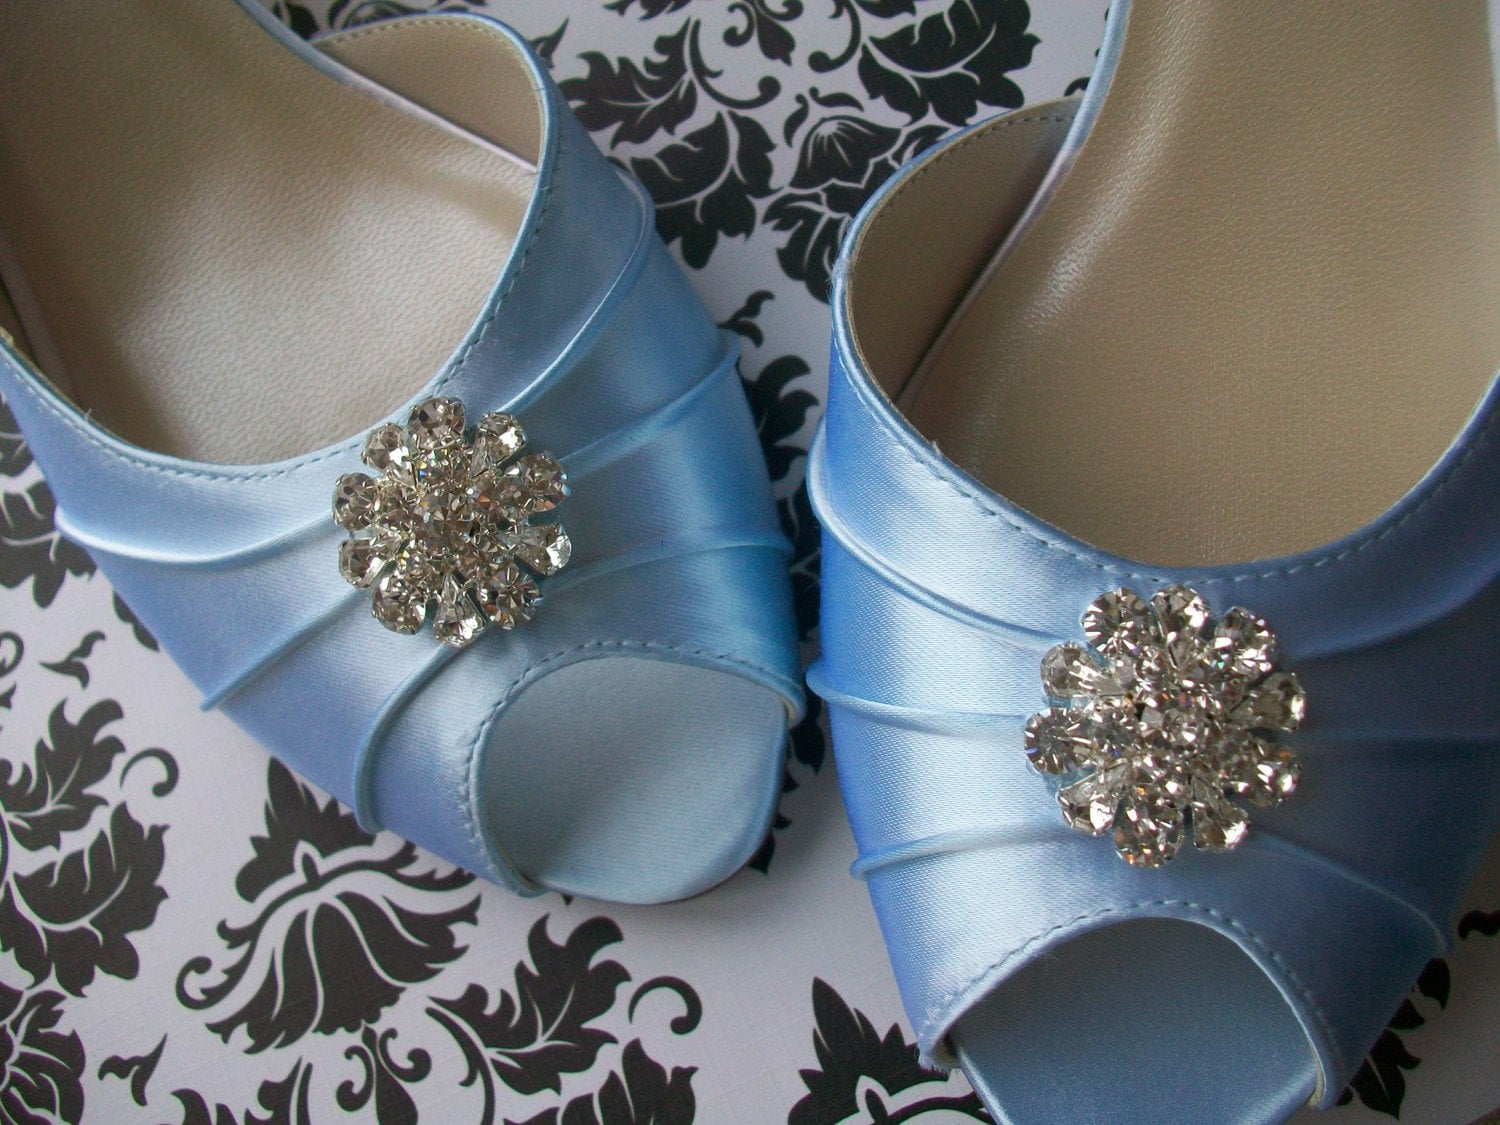 Baby Blue 1 3/4 Heel Satin Shoes With Rhinestones... Available In Medium And Wide... Over 100 Colors To Choose From